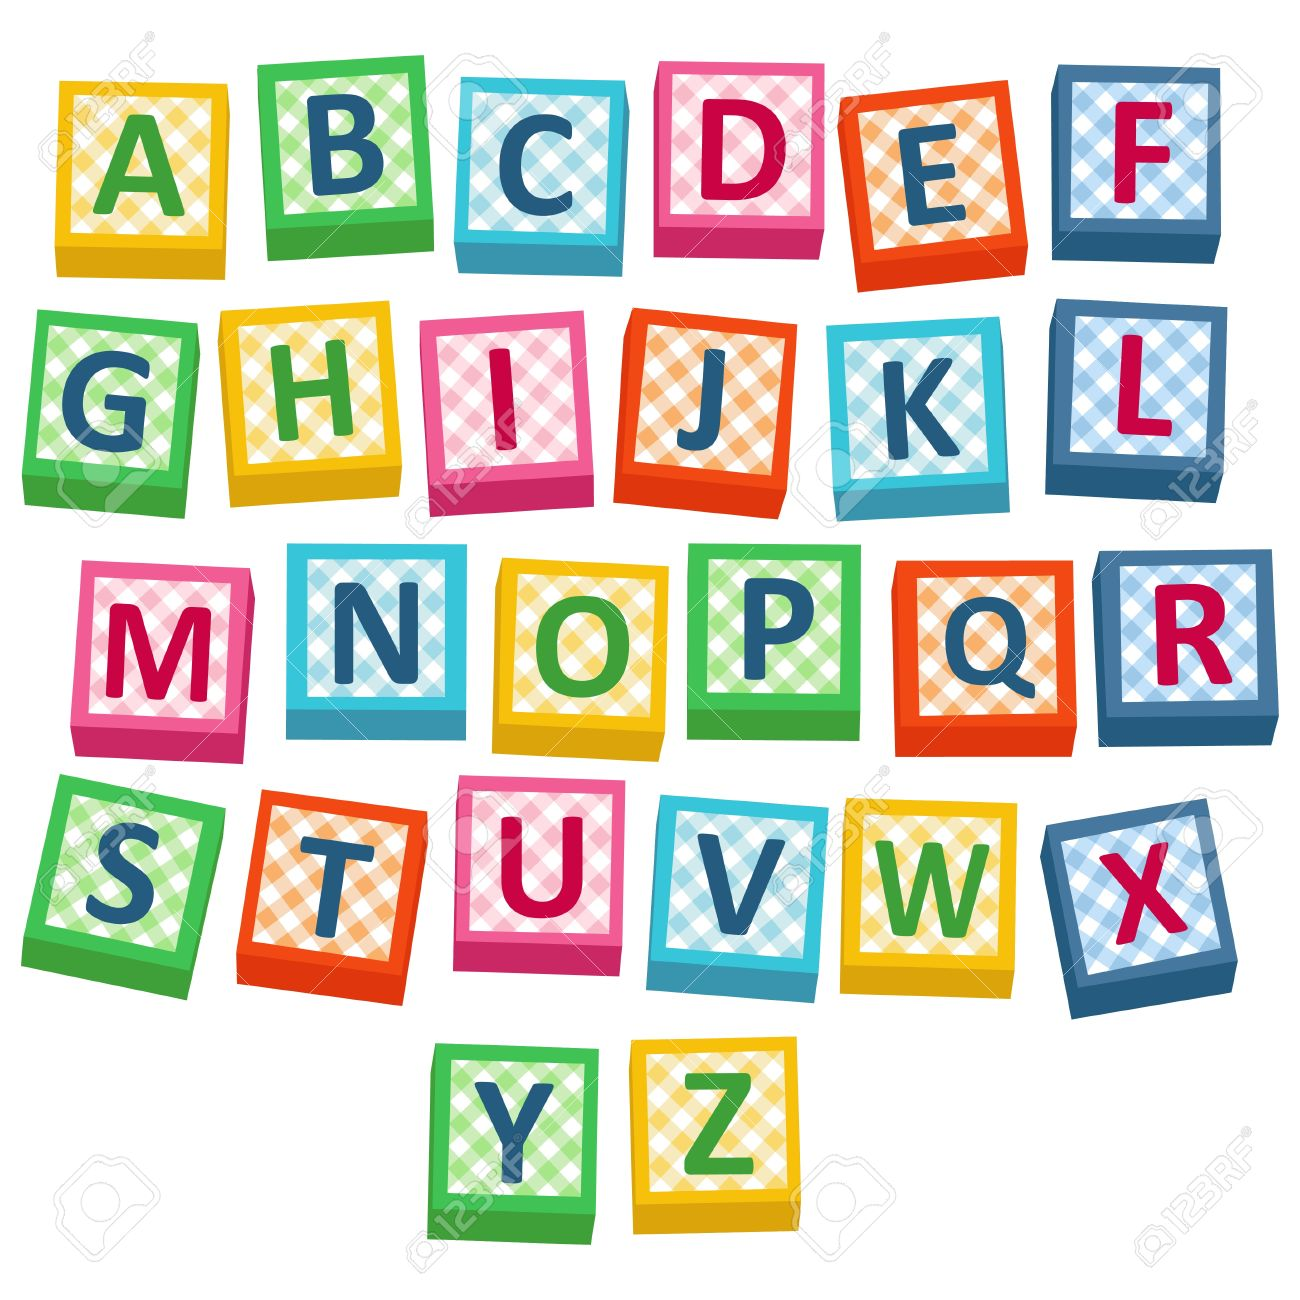 Alphabet building blocks clipart clip English Alphabet Cubes - Illustration Royalty Free Cliparts ... clip